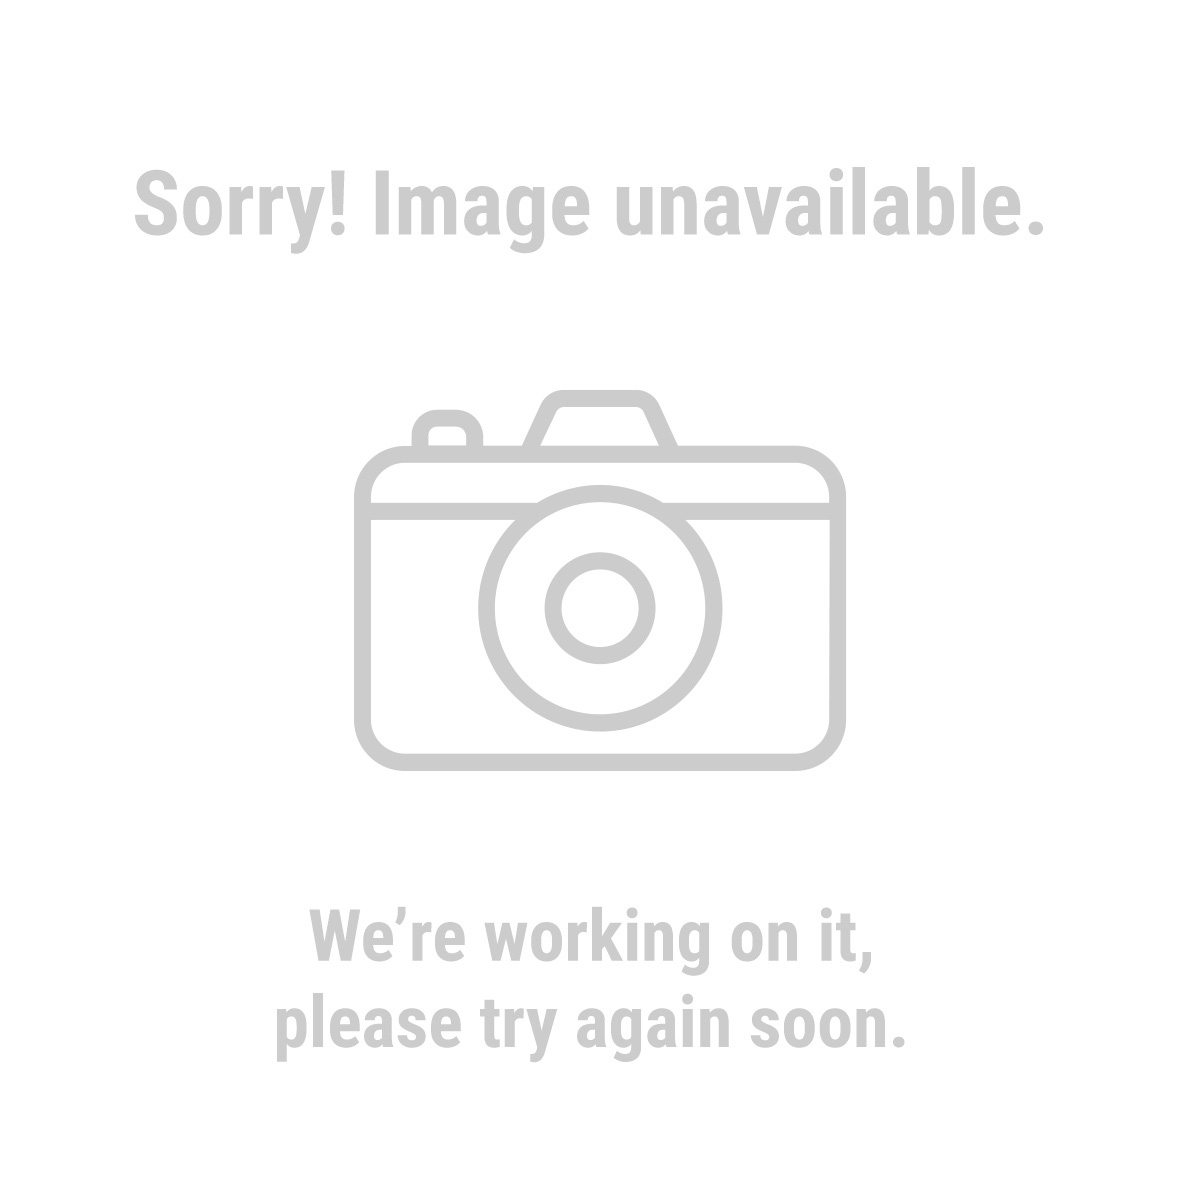 Pittsburgh 66337 12 Piece Punch and Chisel Set